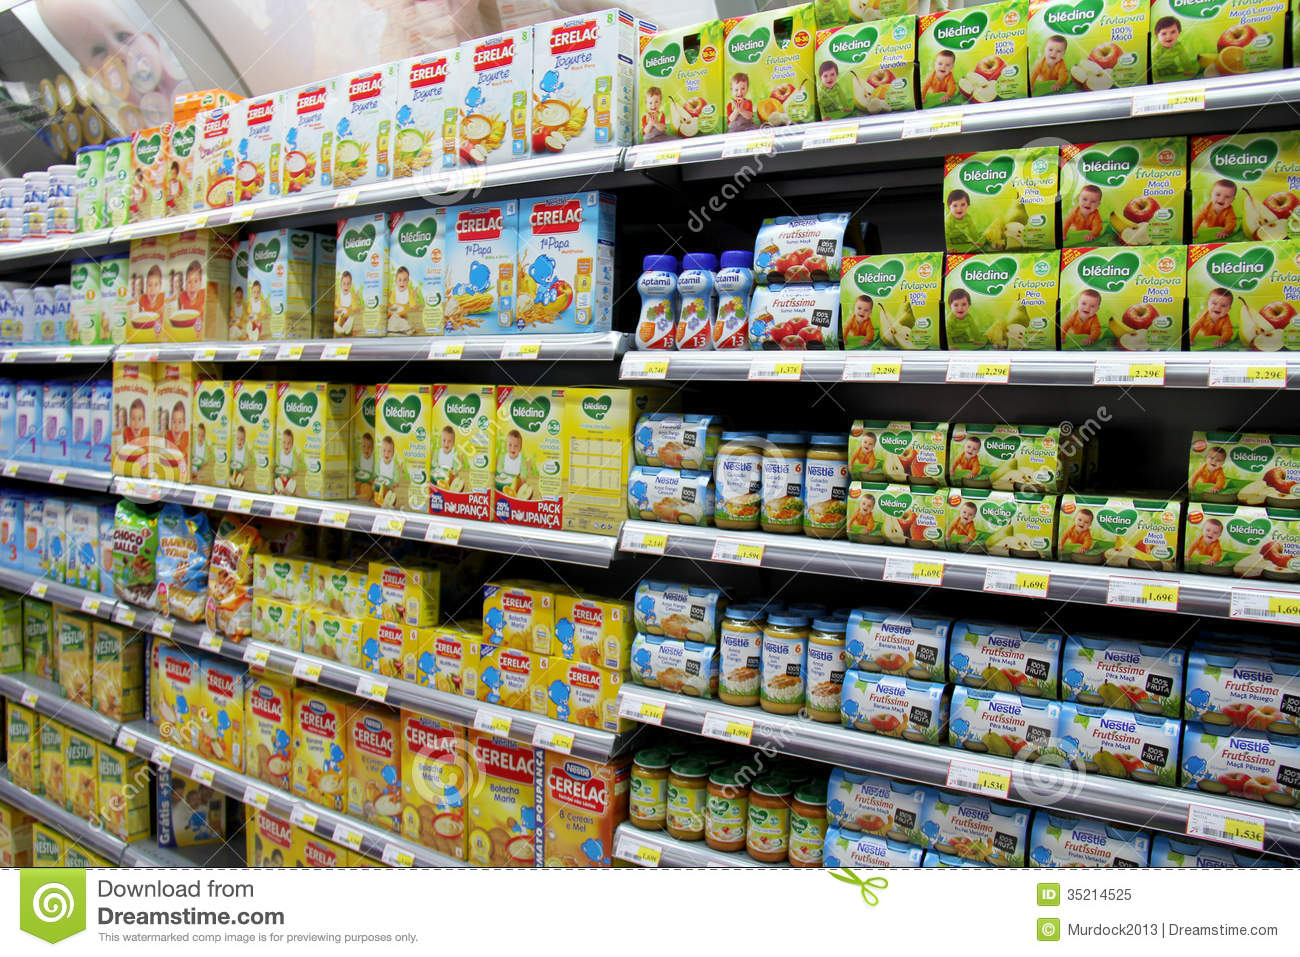 Free Images Of Baby Food Jars In A Market Shelf